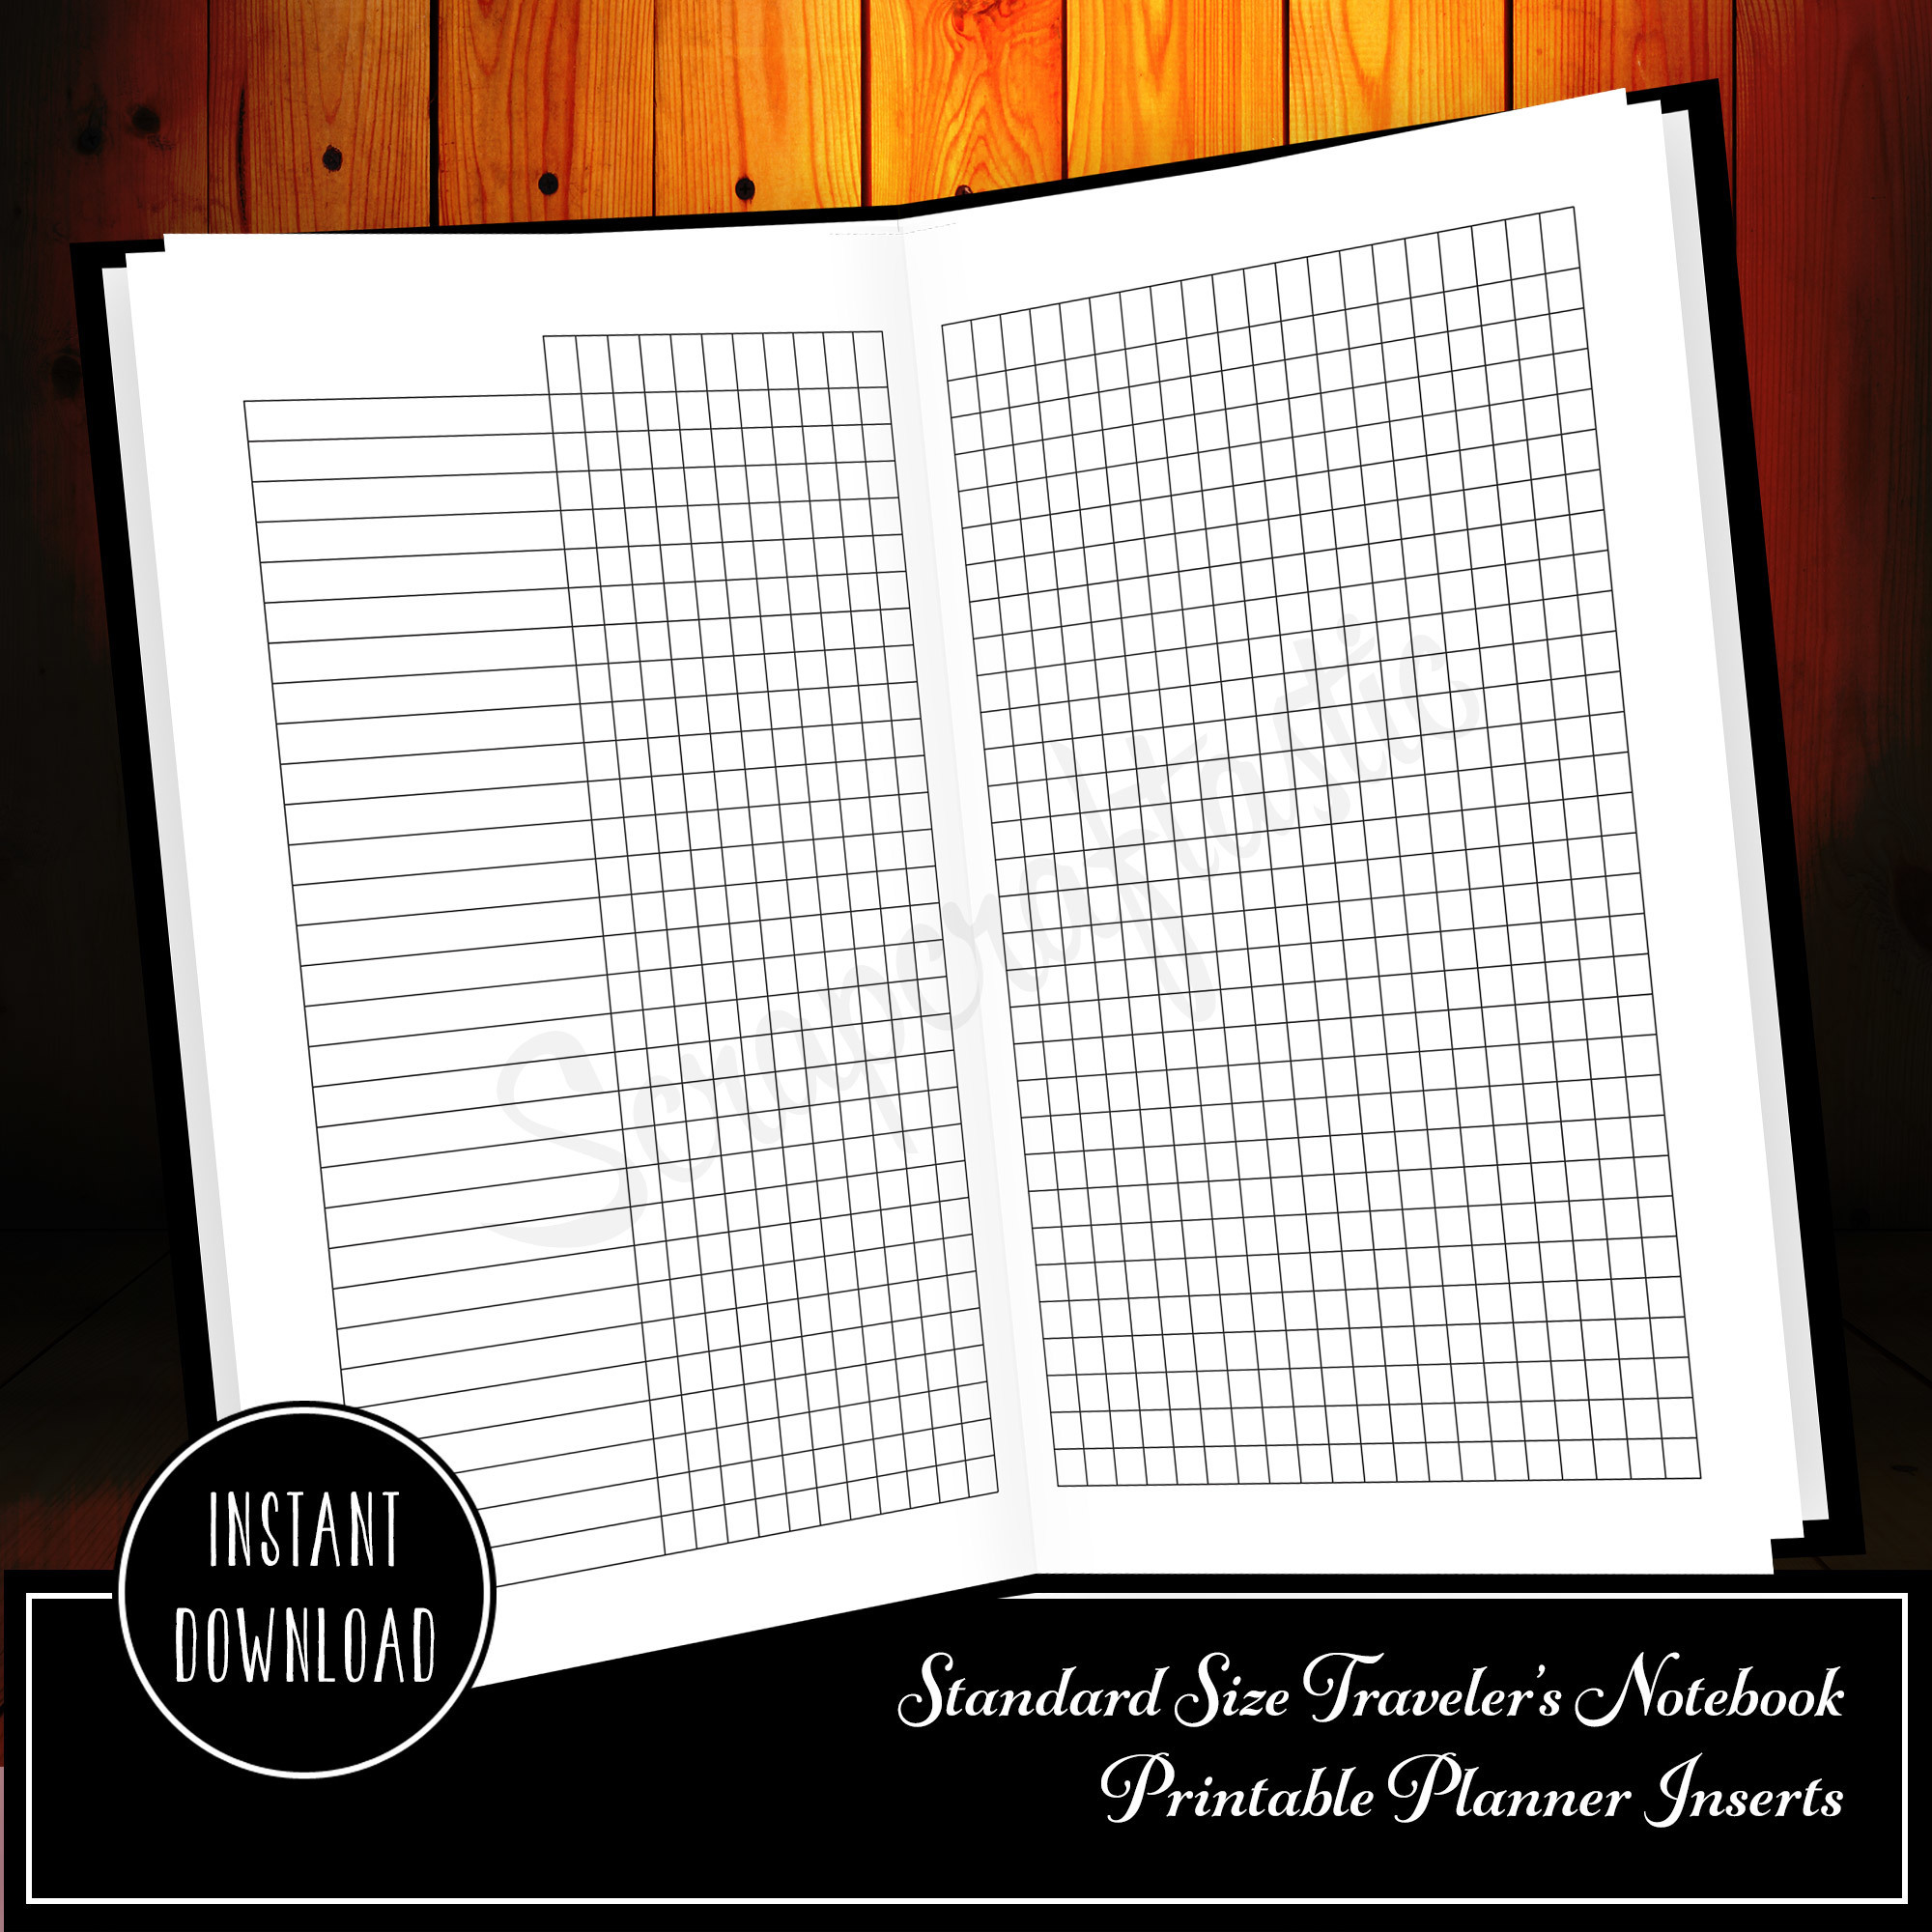 Habit Tracker Standard/Regular Size Traveler's Notebook Printable Planner Inserts 30007